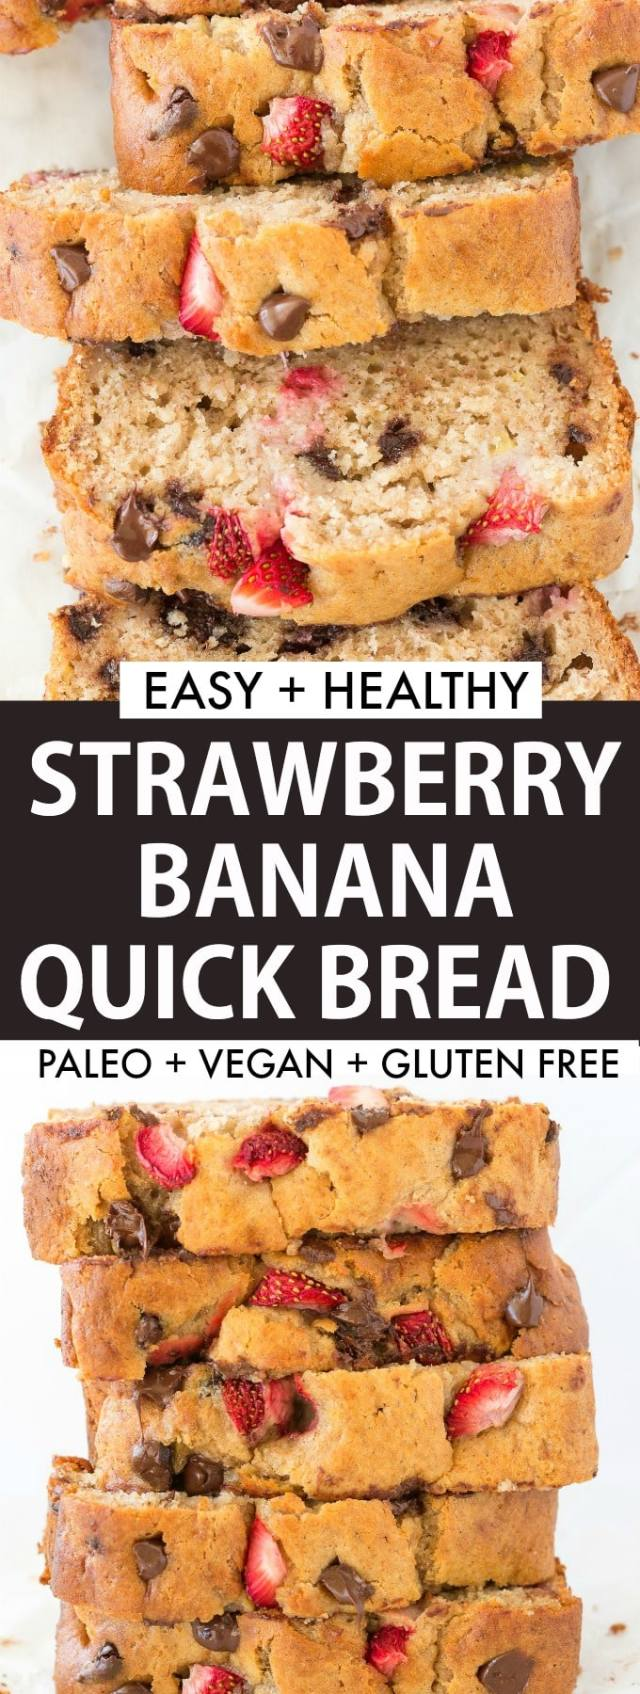 Easy Healthy Banana Bread with fresh strawberries! Low carb and vegan!